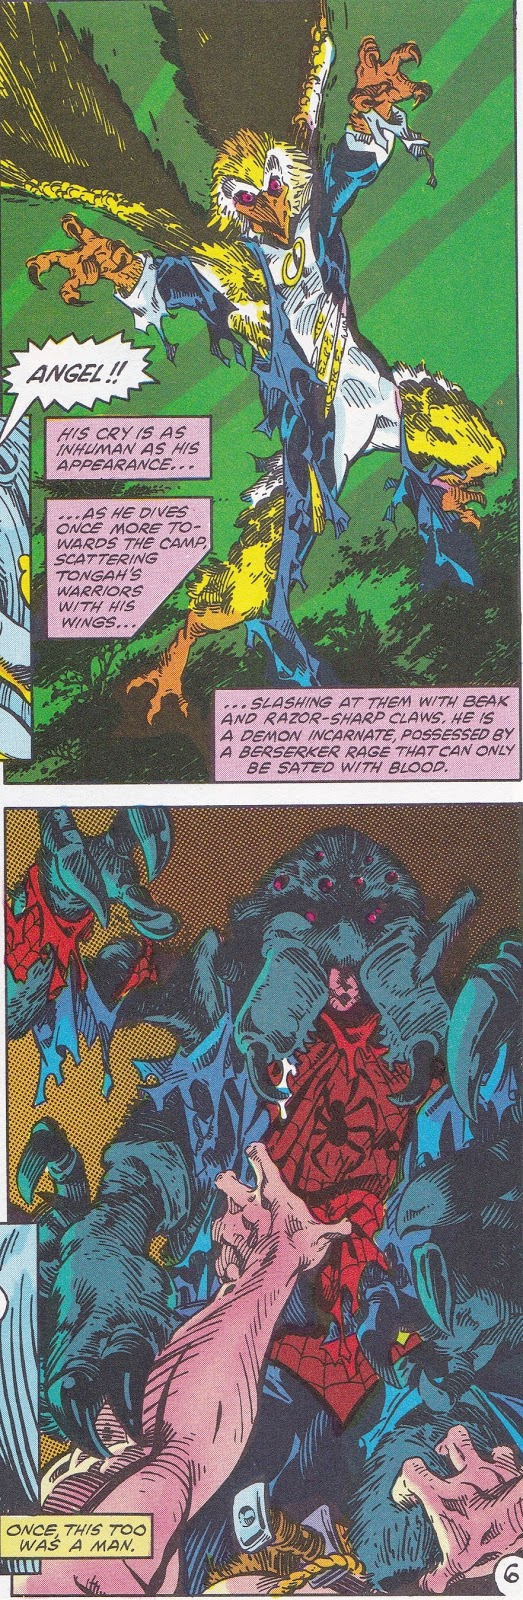 Bronze age babies a modern stone age fantasy marvel fanfare 1 2 i enjoyed the links between this story and x men s 60 63 and s 113 116 with appearances by magnetos savage land mutates and references to garokk and fandeluxe Choice Image